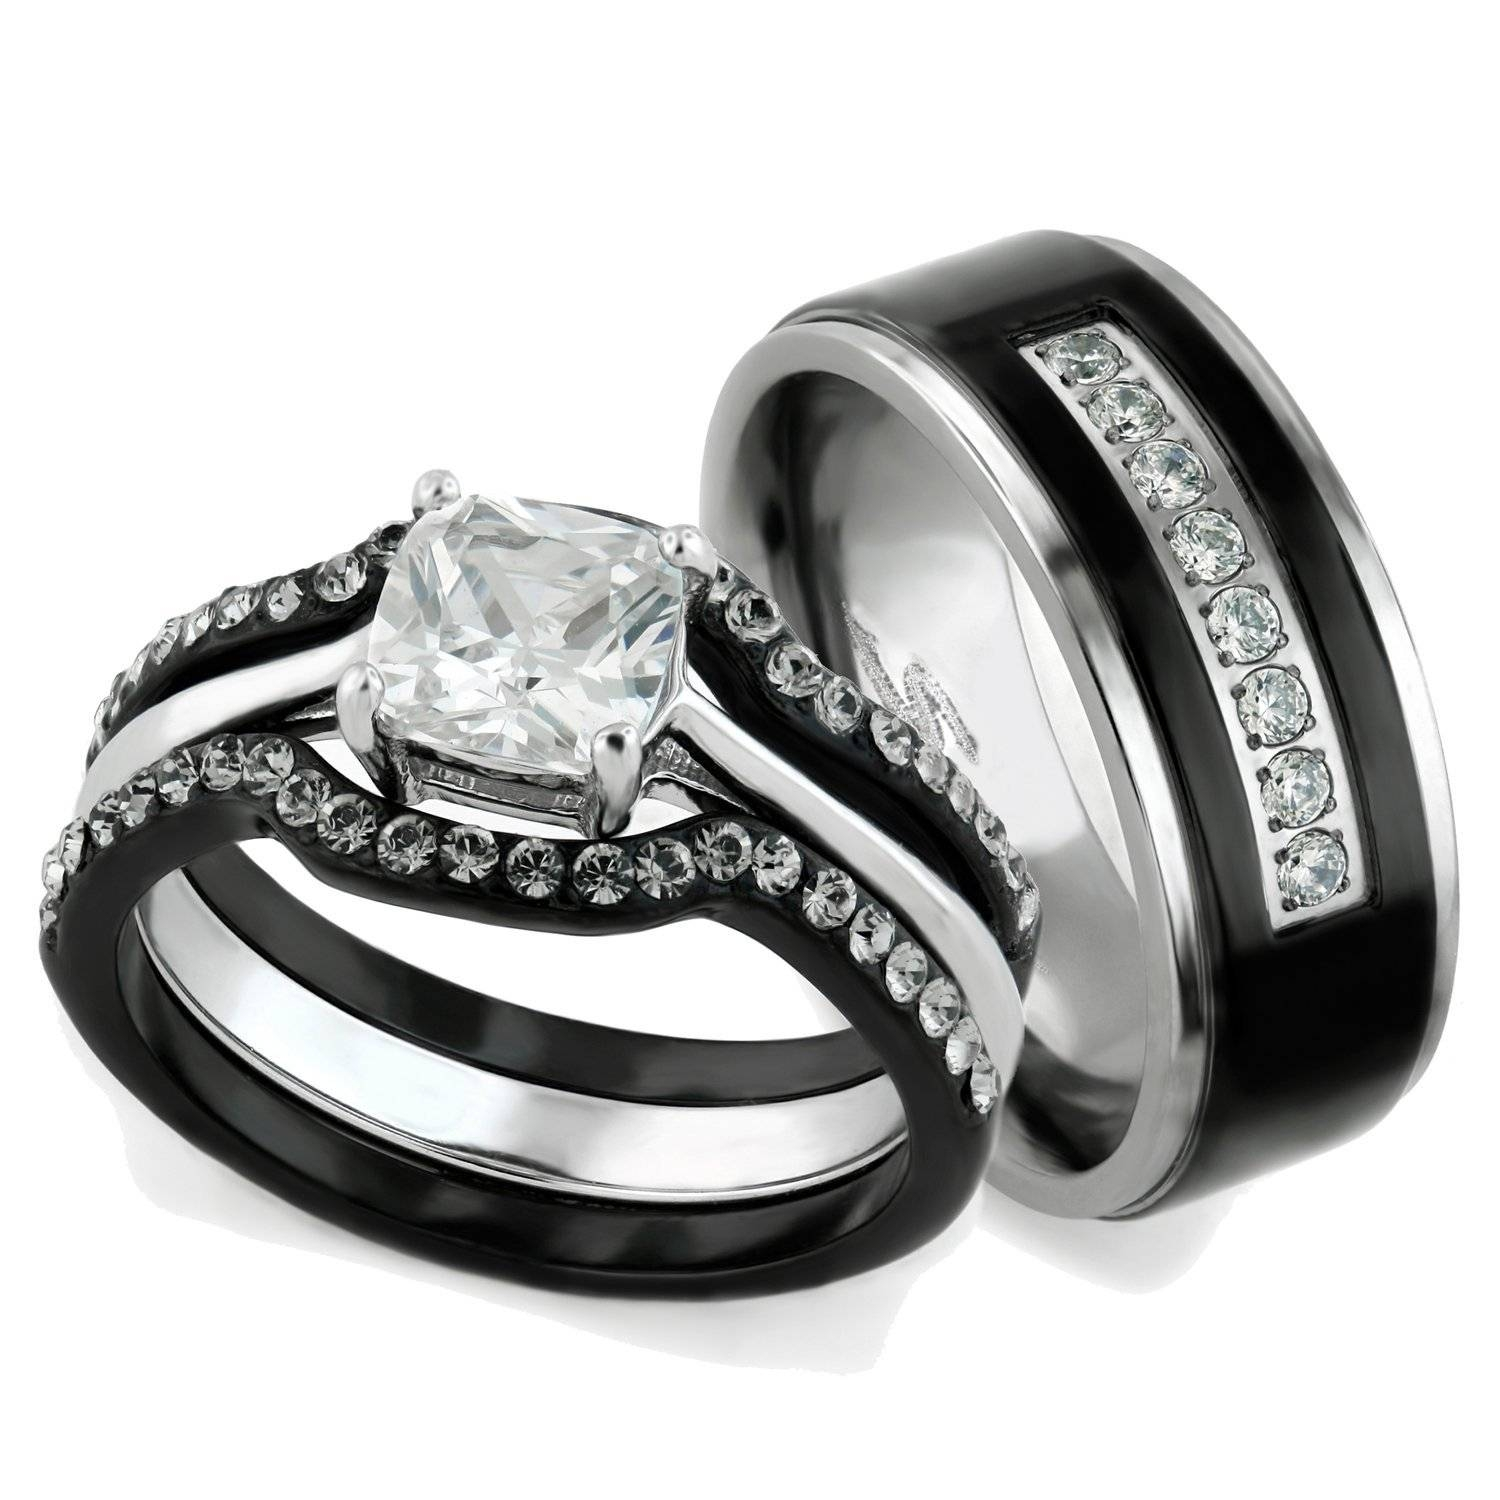 45 Walmart Wedding Sets, Walmart Wedding Rings Sets For Him And For Walmart White Gold Wedding Bands (View 5 of 15)